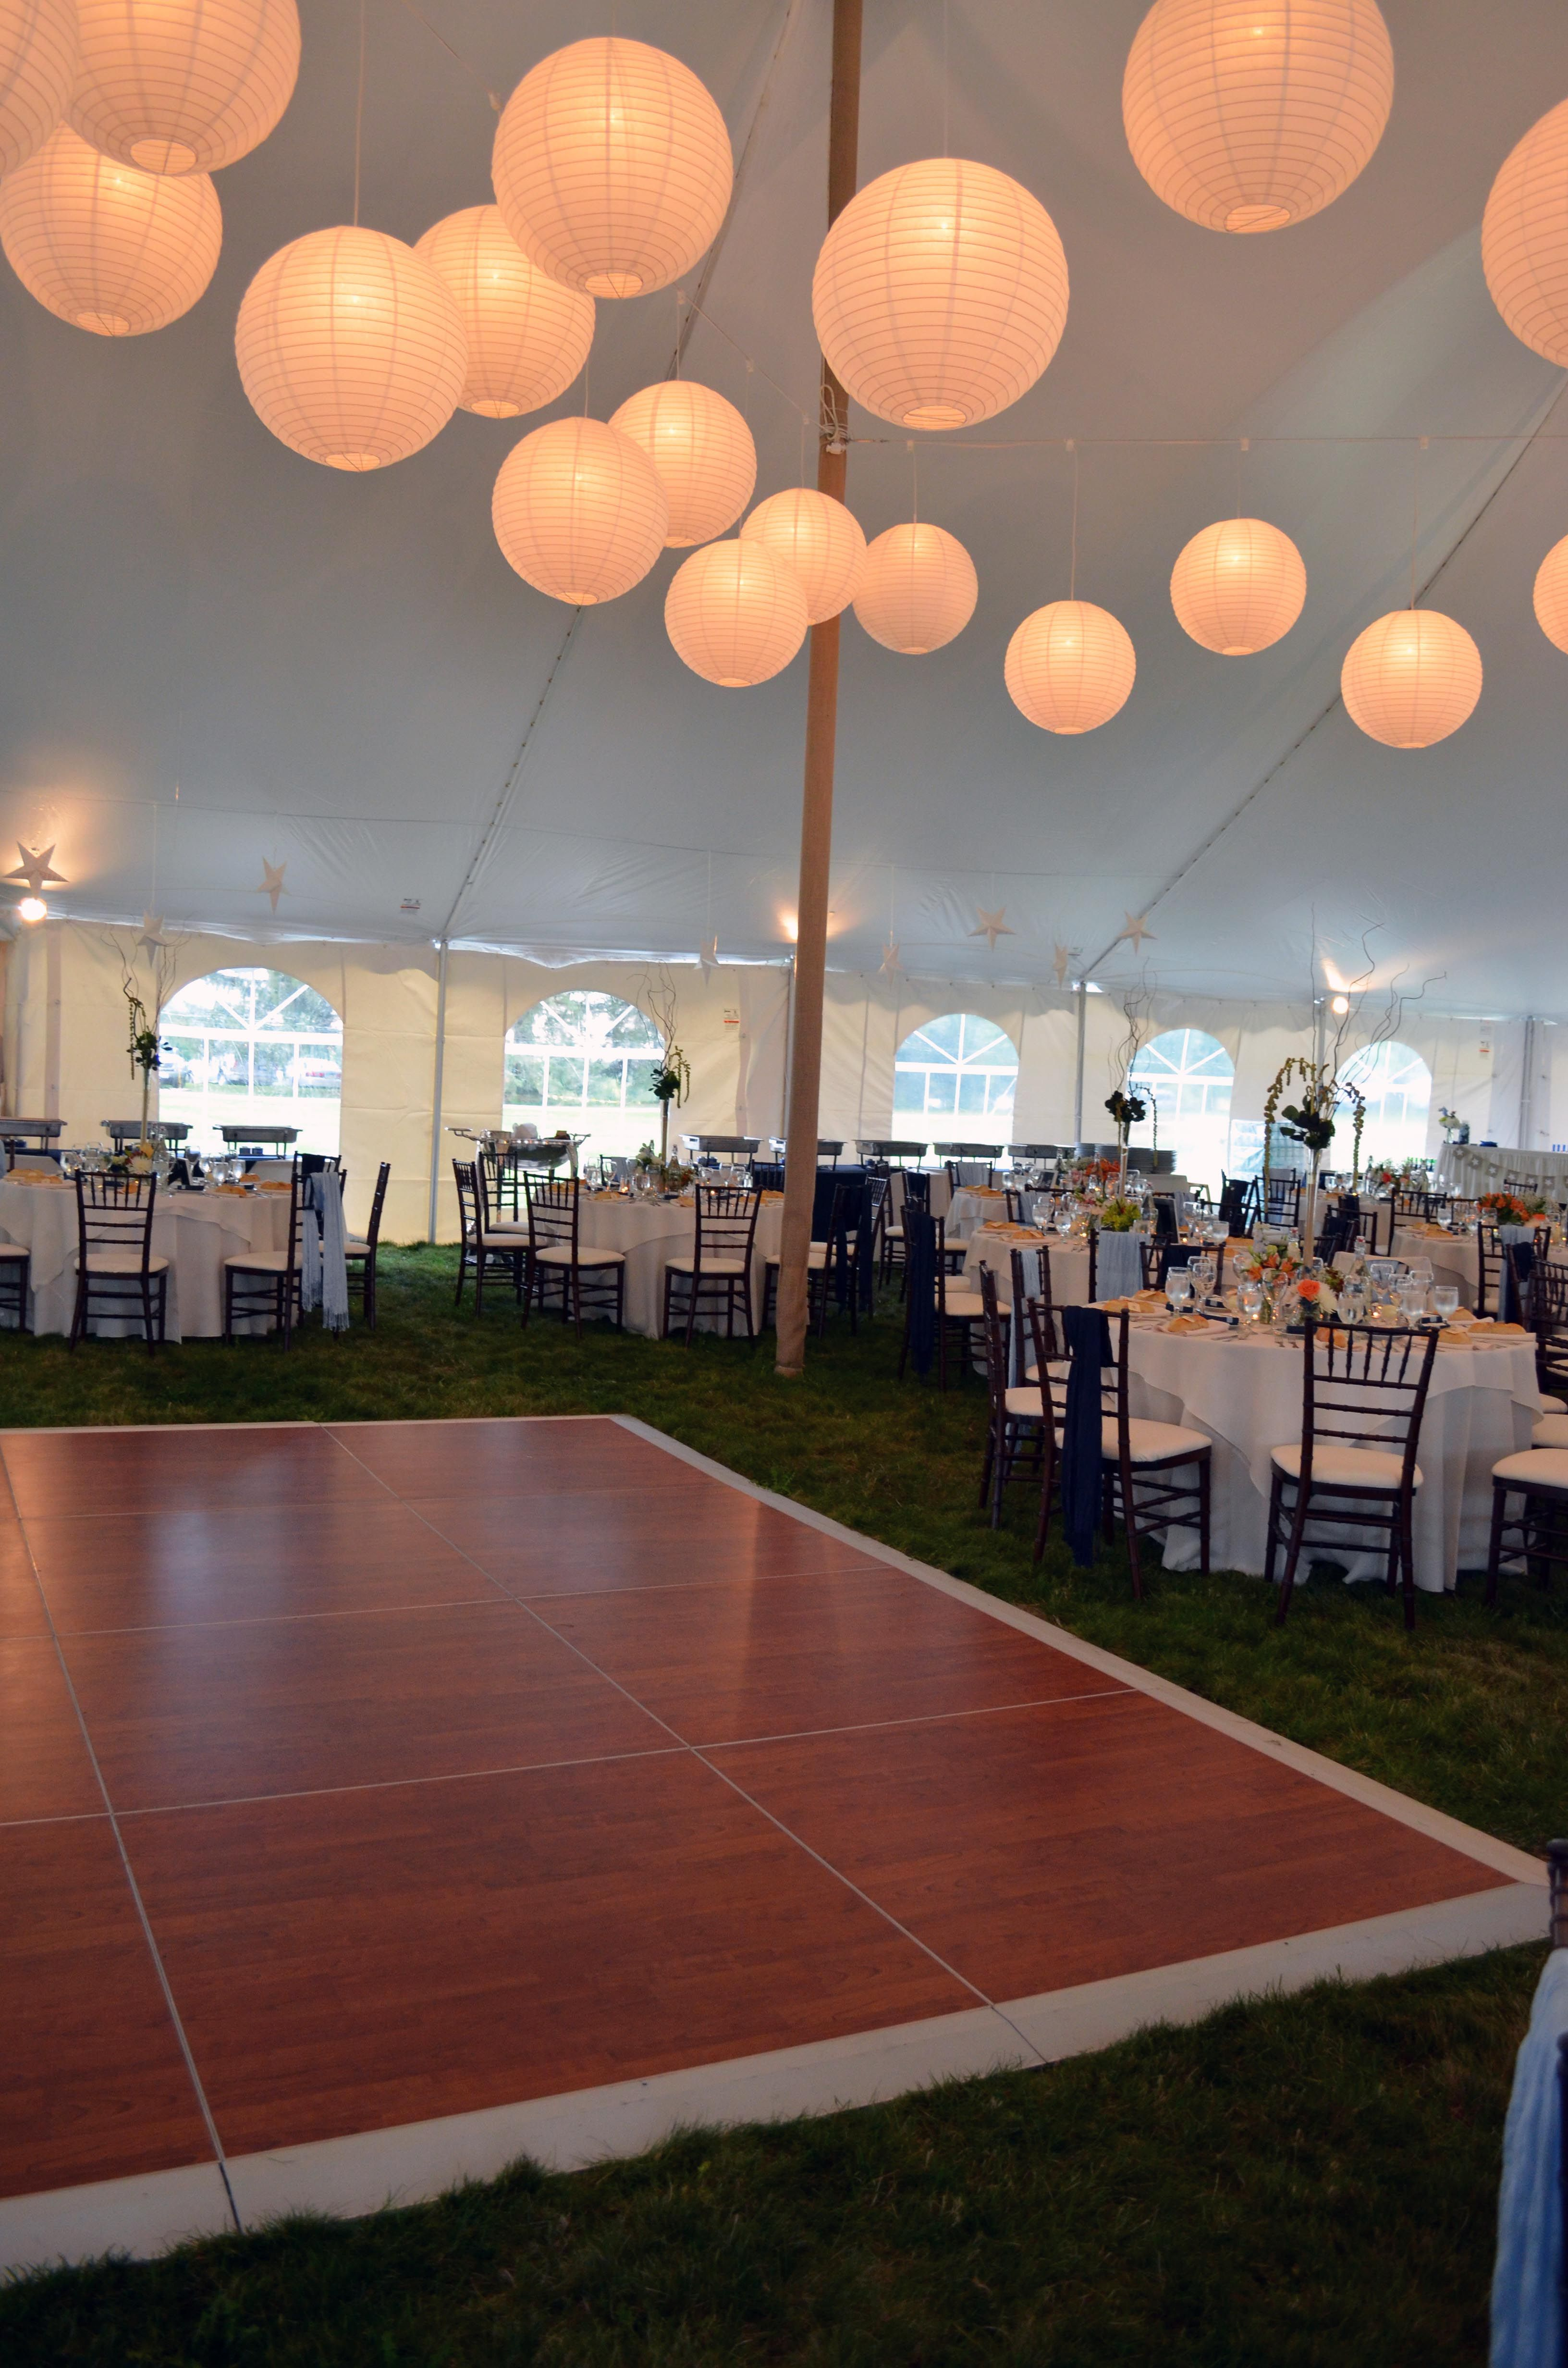 These lanterns add a beautiful glow to an outdoor tent wedding